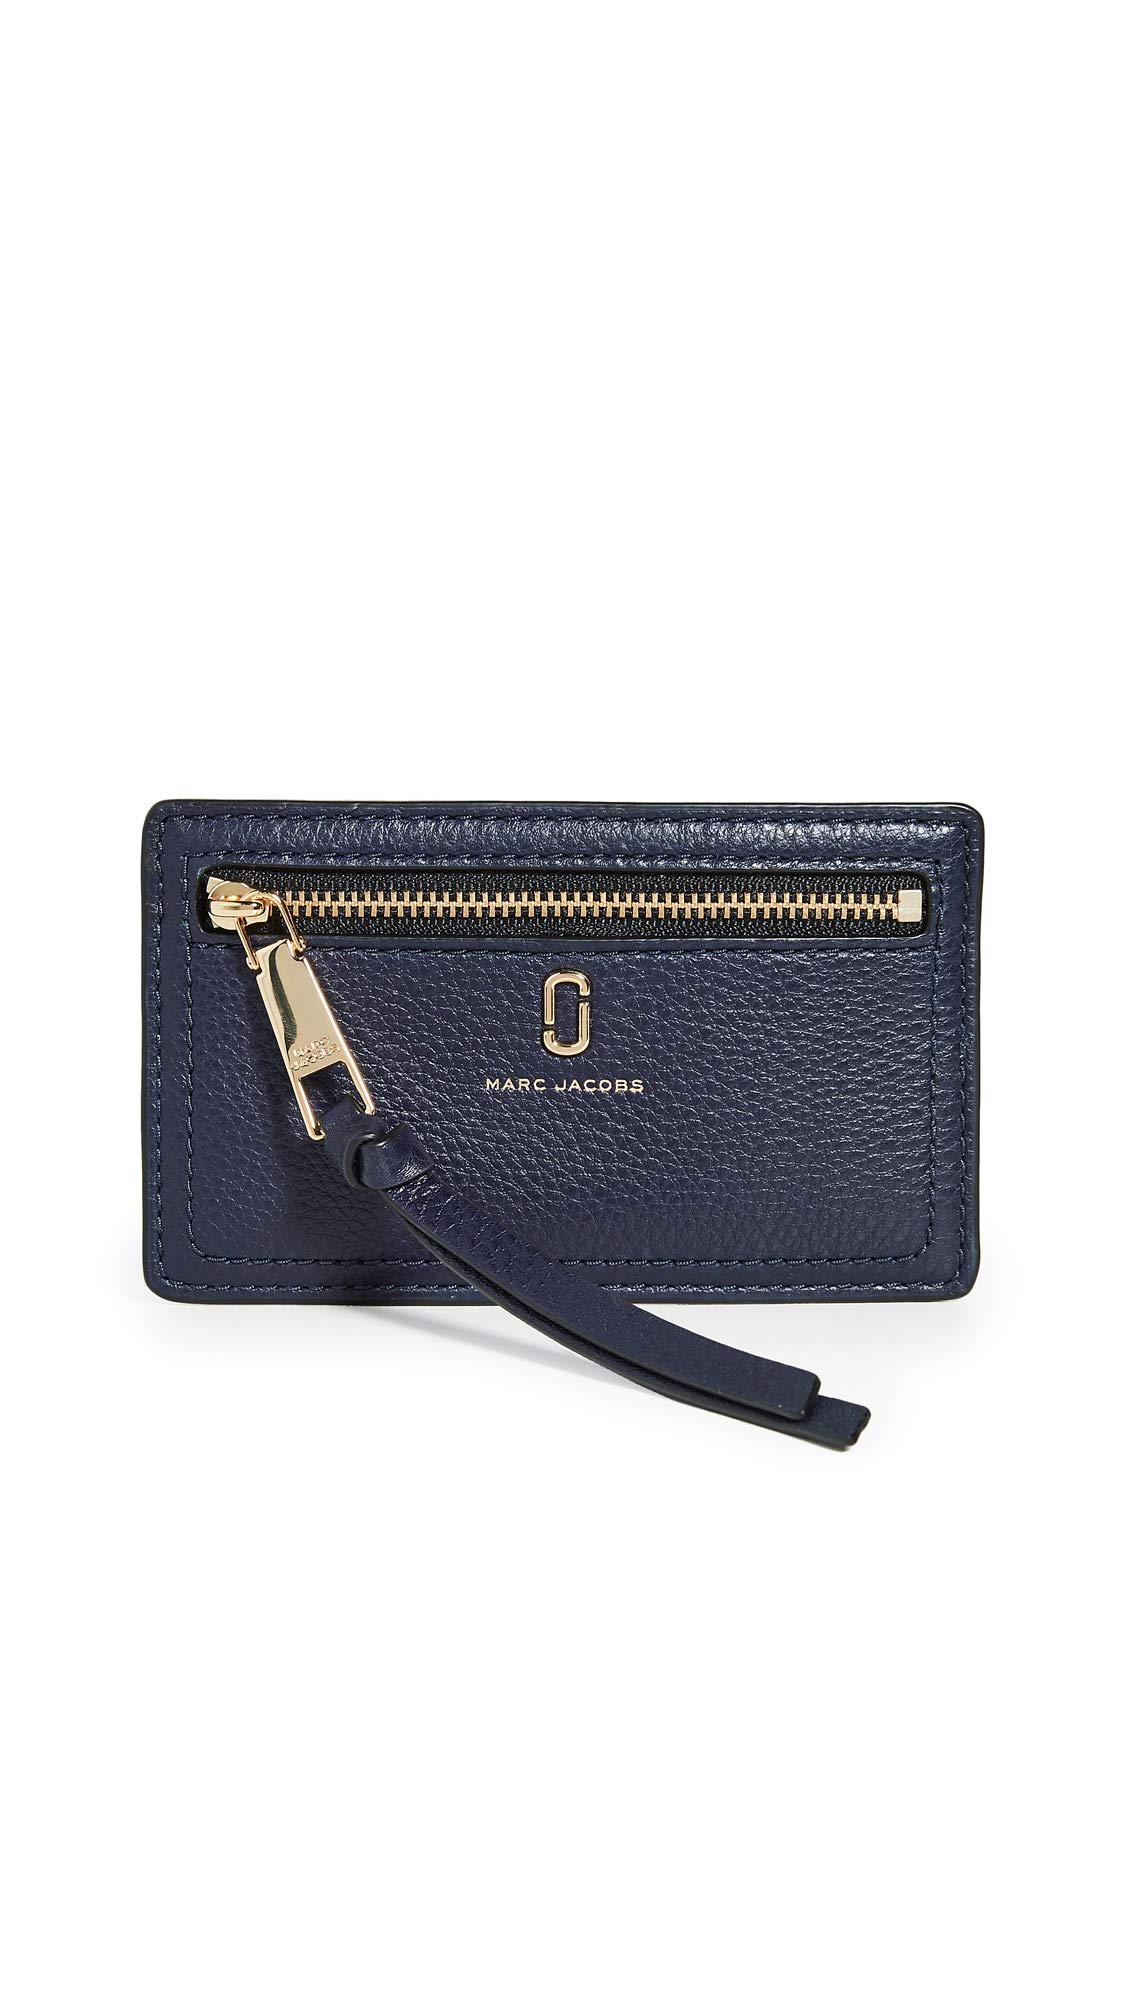 Marc Jacobs Women's Card Holder, Navy, Blue, One Size by Marc Jacobs